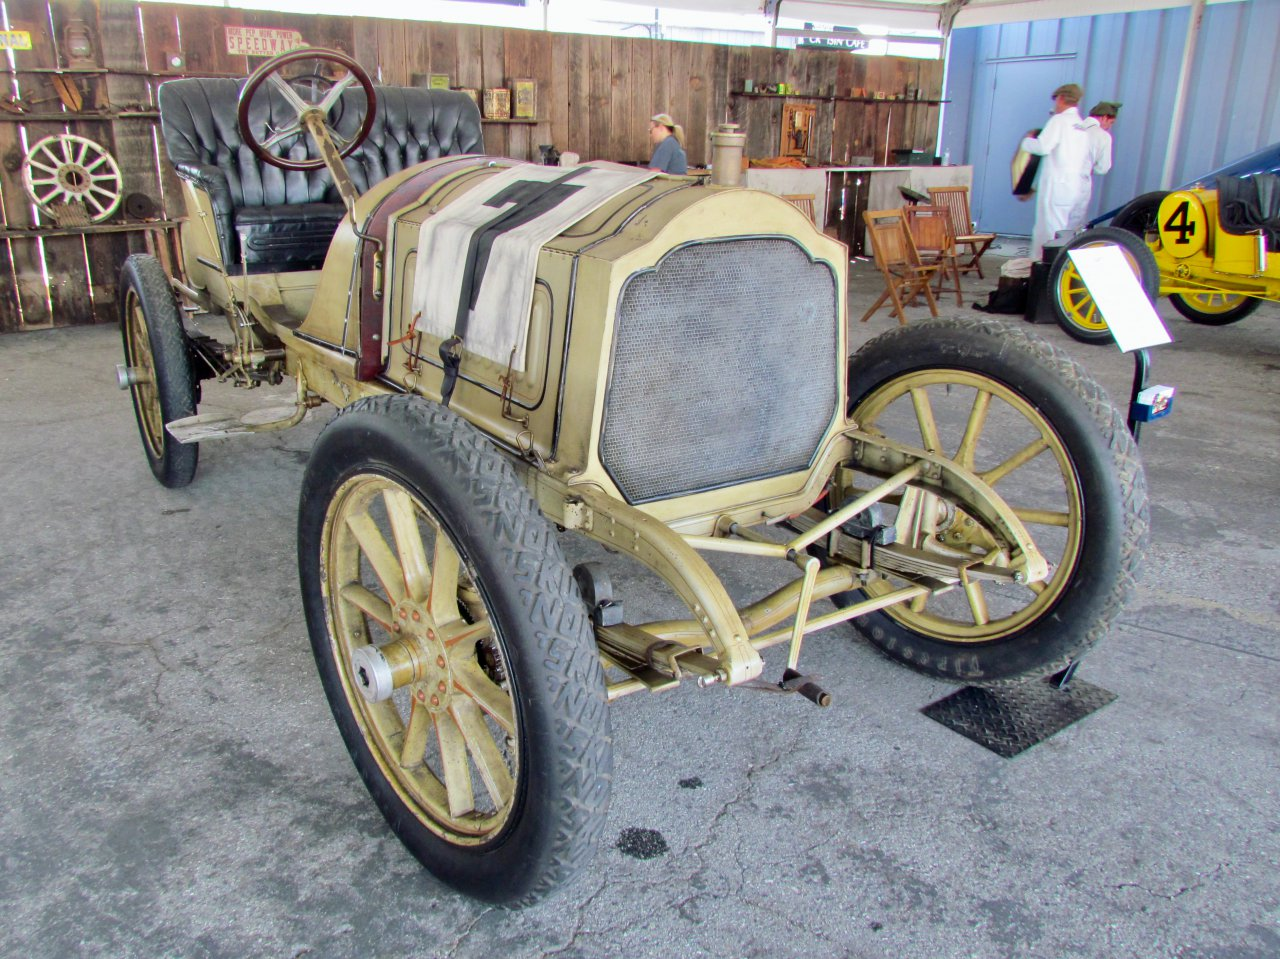 ragtime, Inherited trunk leads to fascination with early history of auto racing, ClassicCars.com Journal